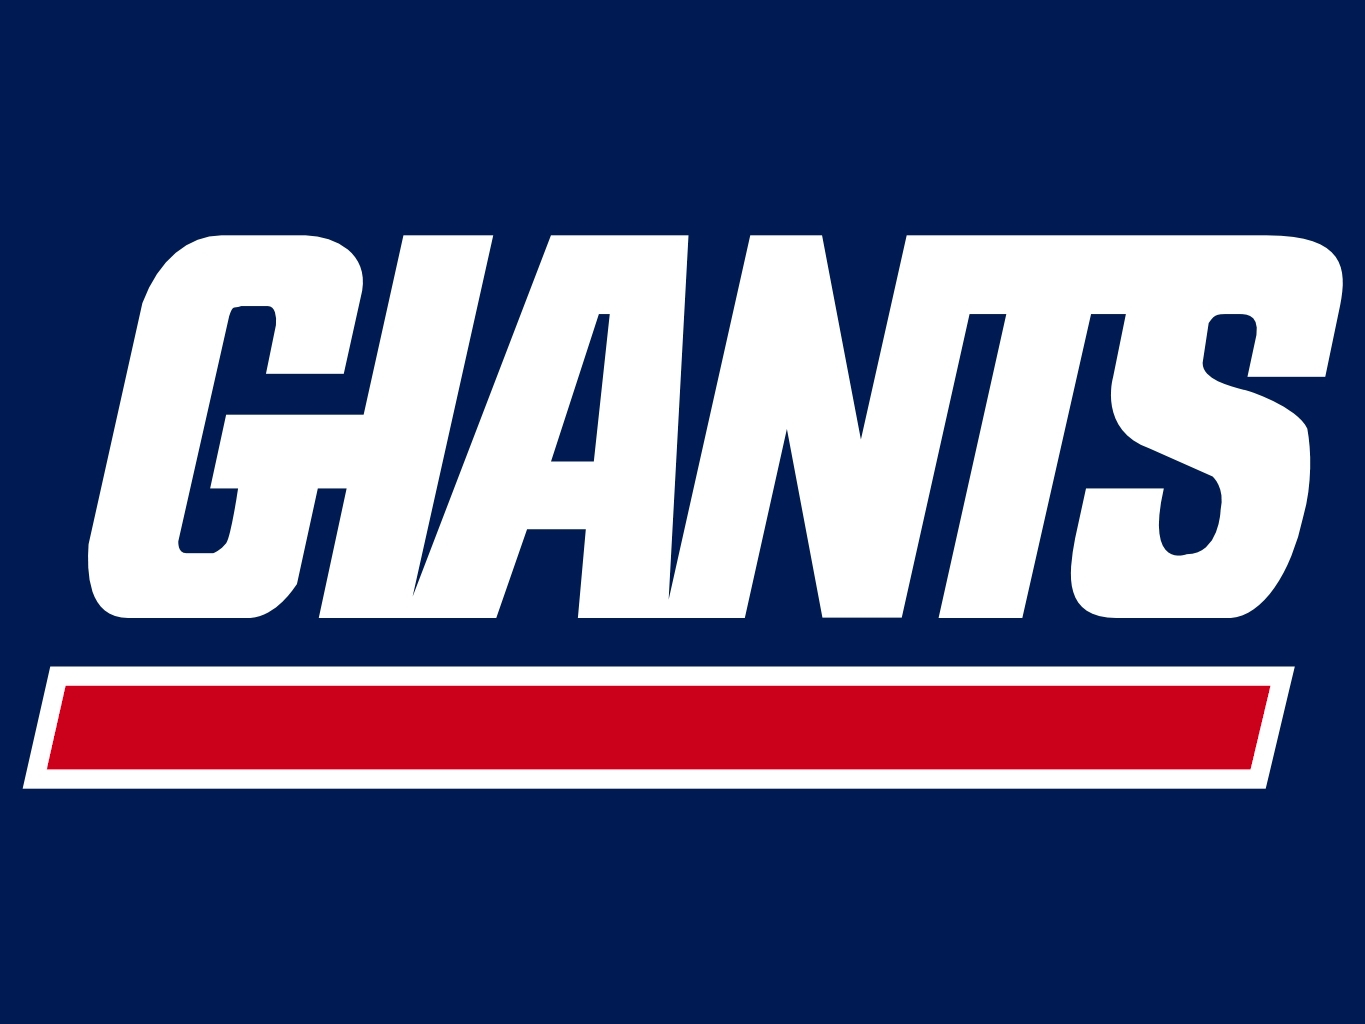 New York Giants Logos